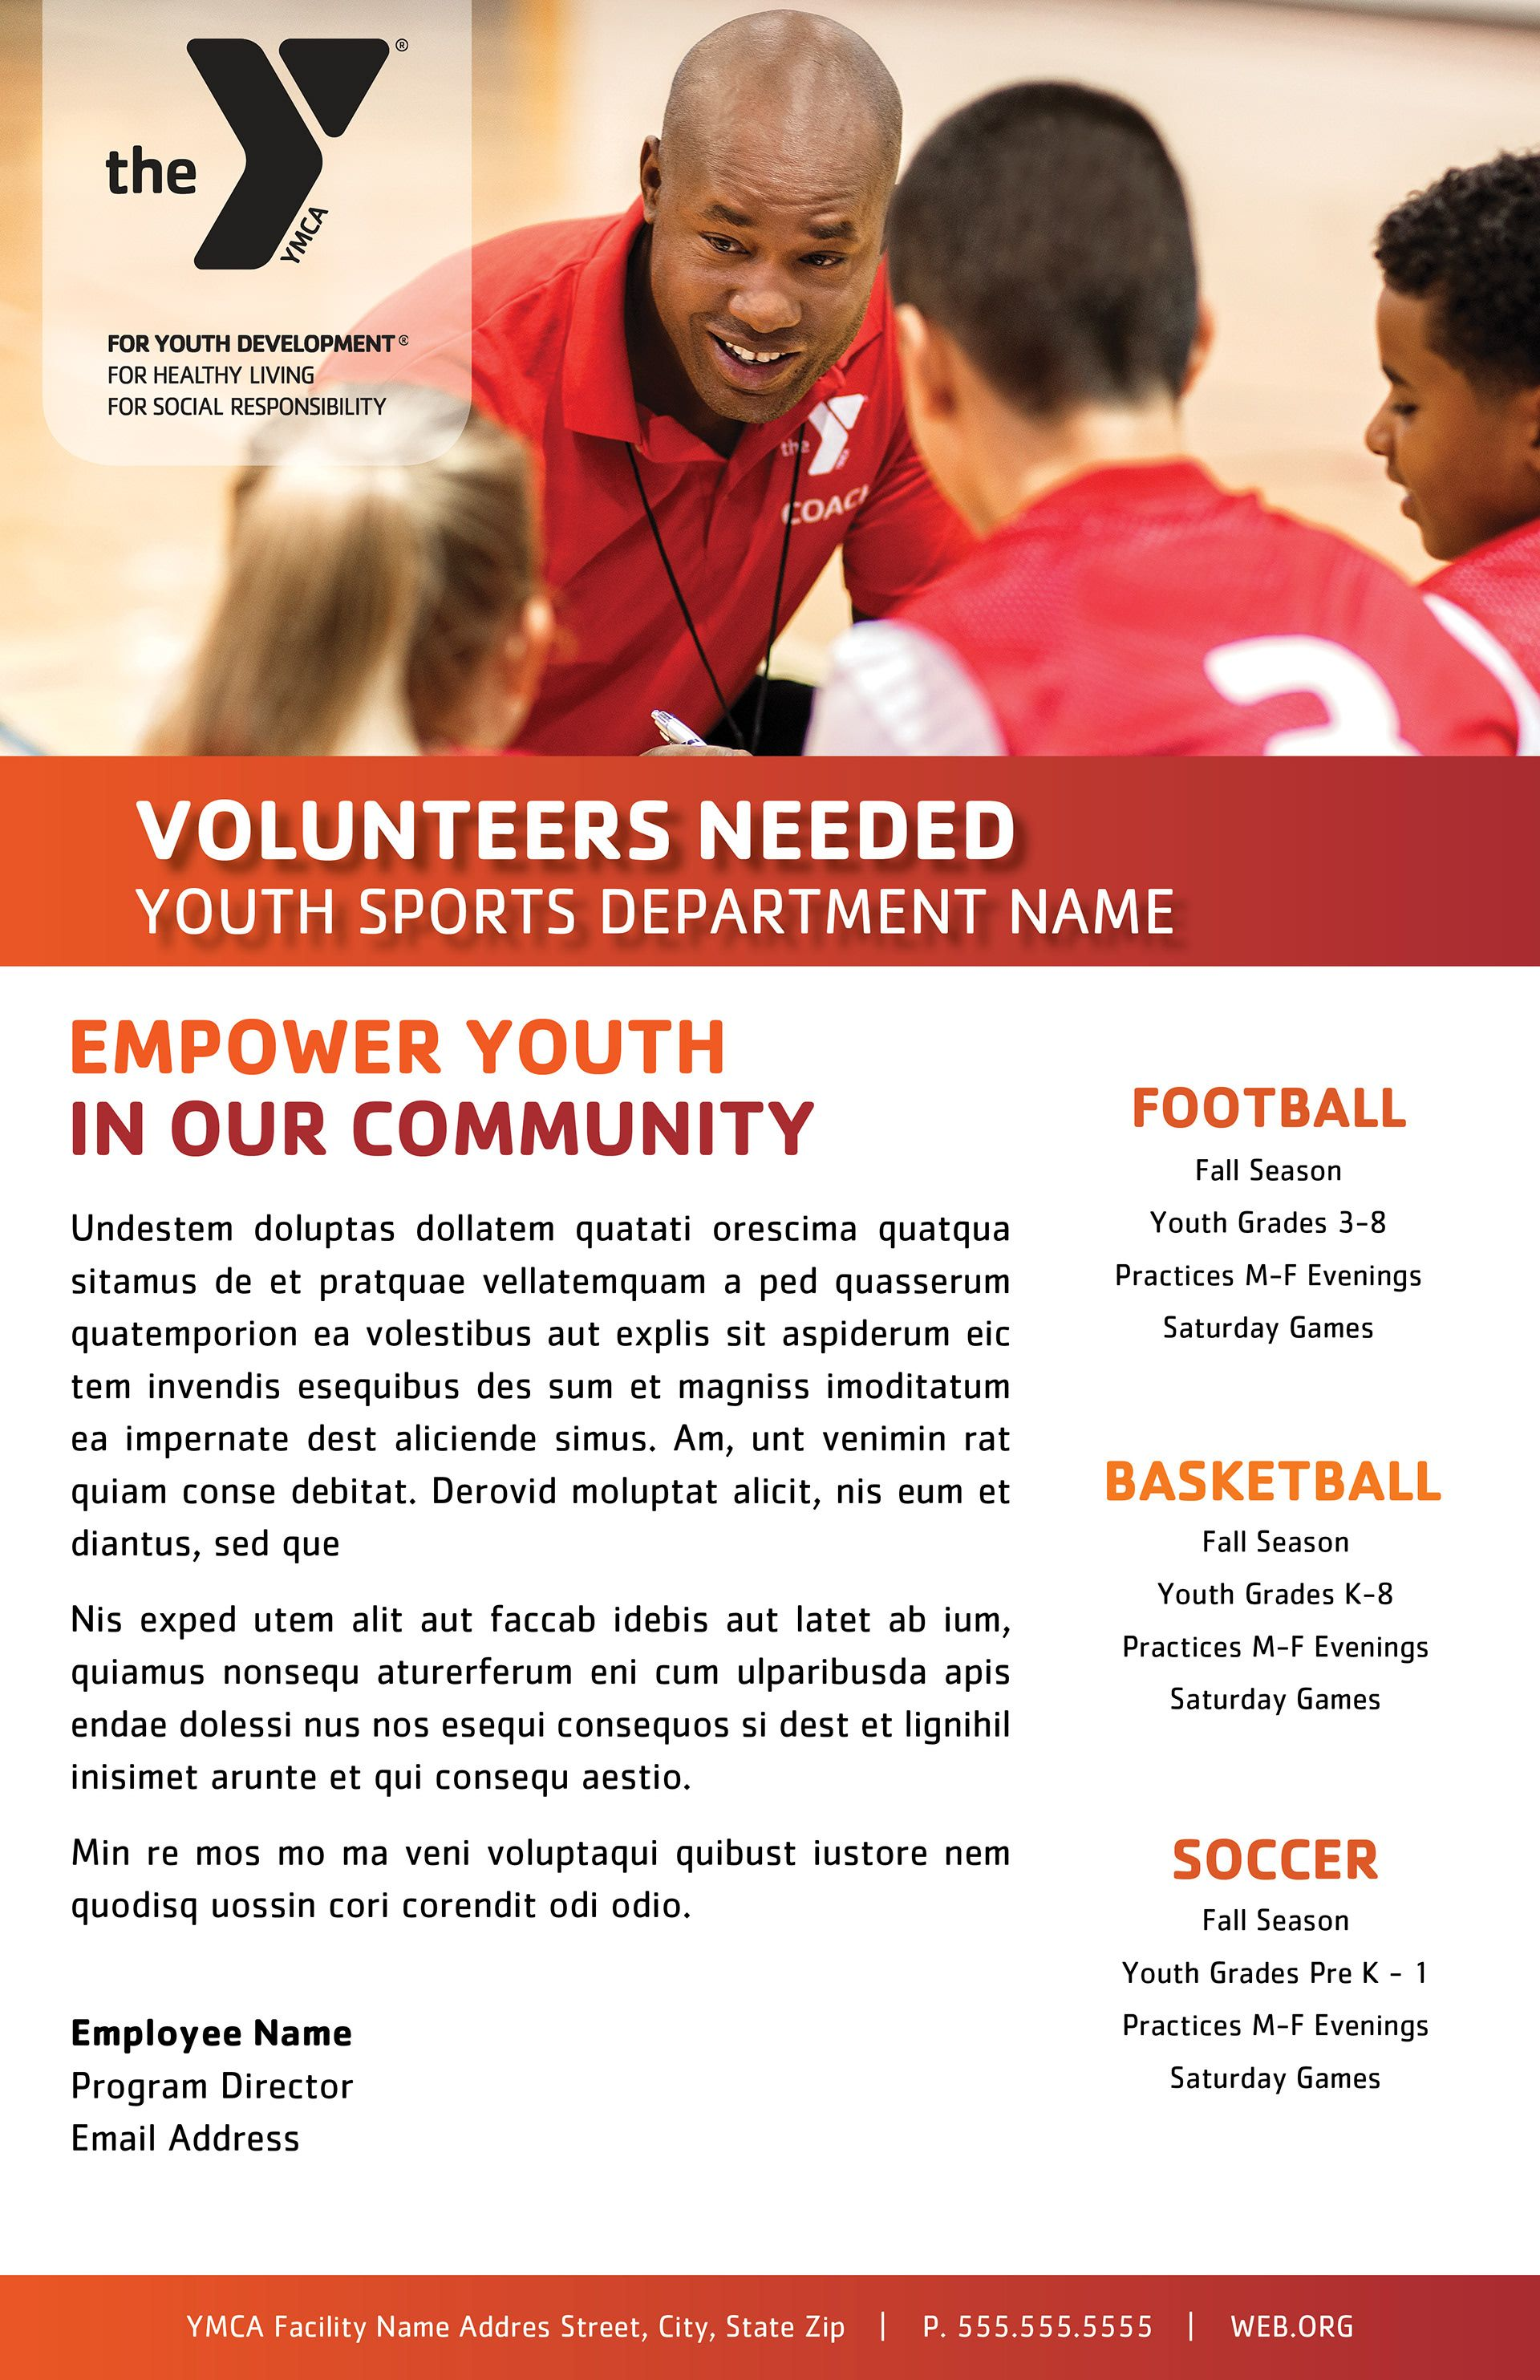 Layout Concept The Ymca Is A Volunteer Based Organization And Facilities Are Always Looking For Youth Sports Coaches Coaching Youth Sports Ymca Youth Sports